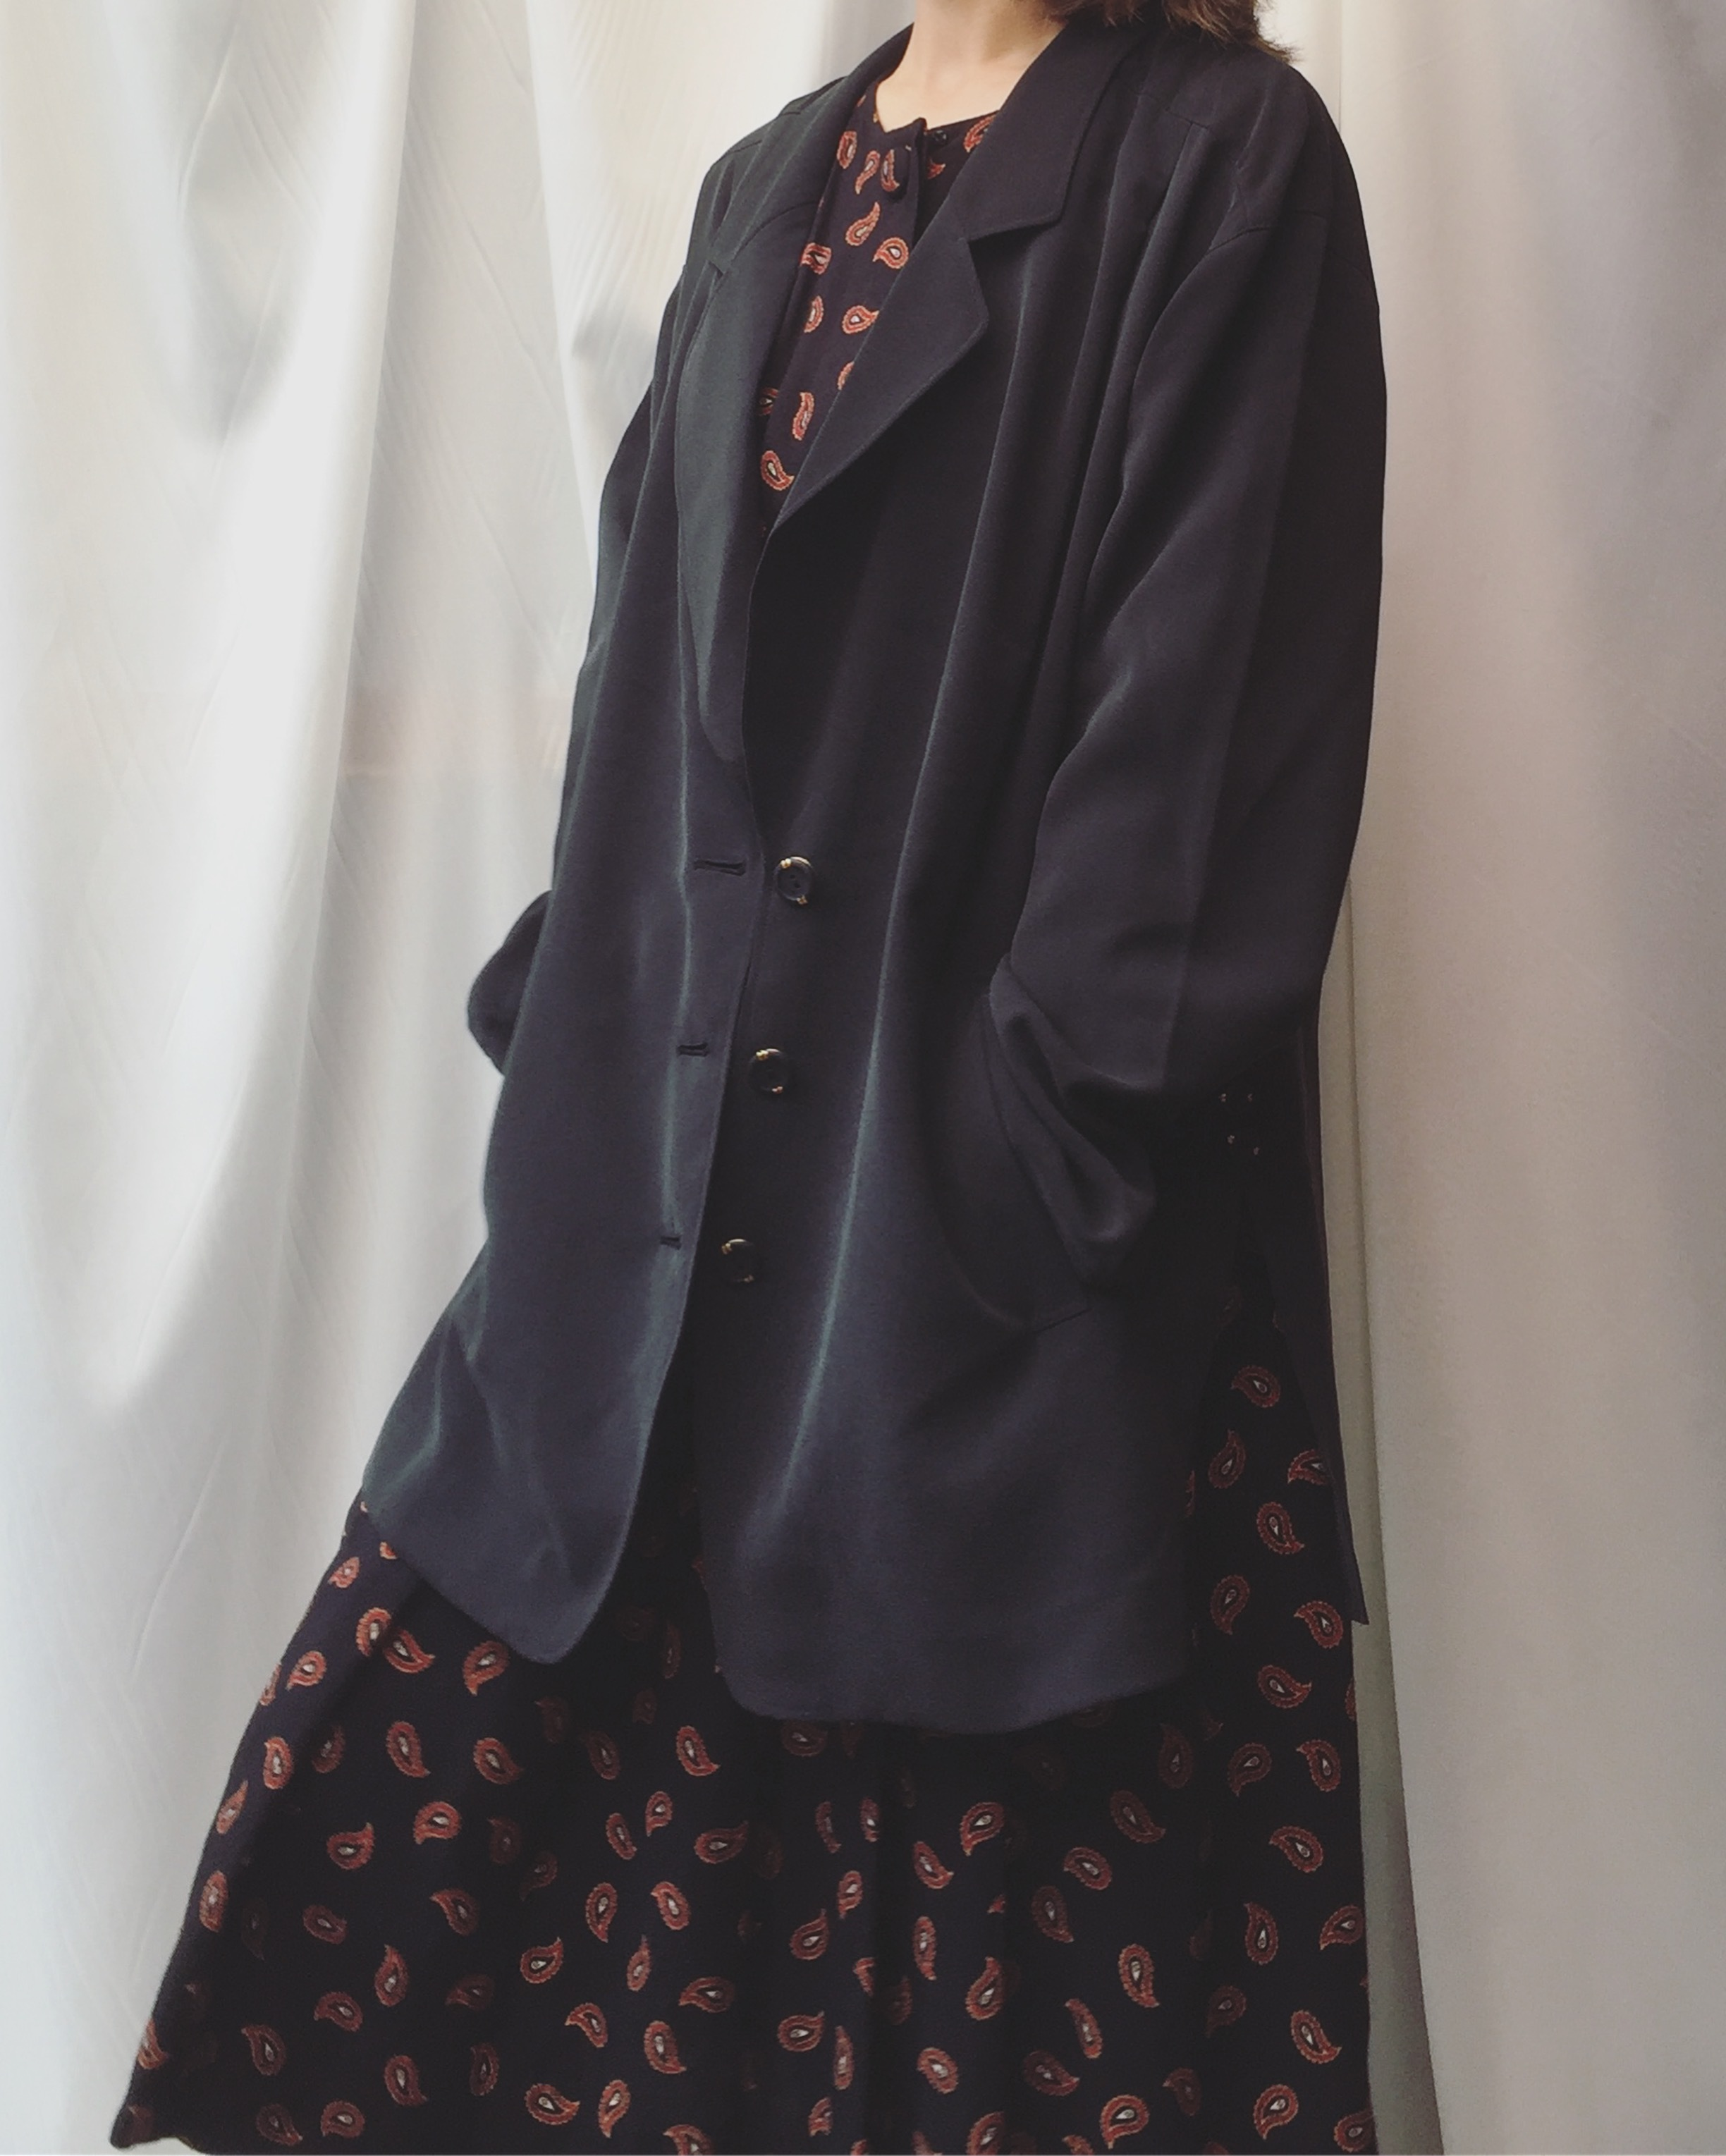 vintage oversized outer